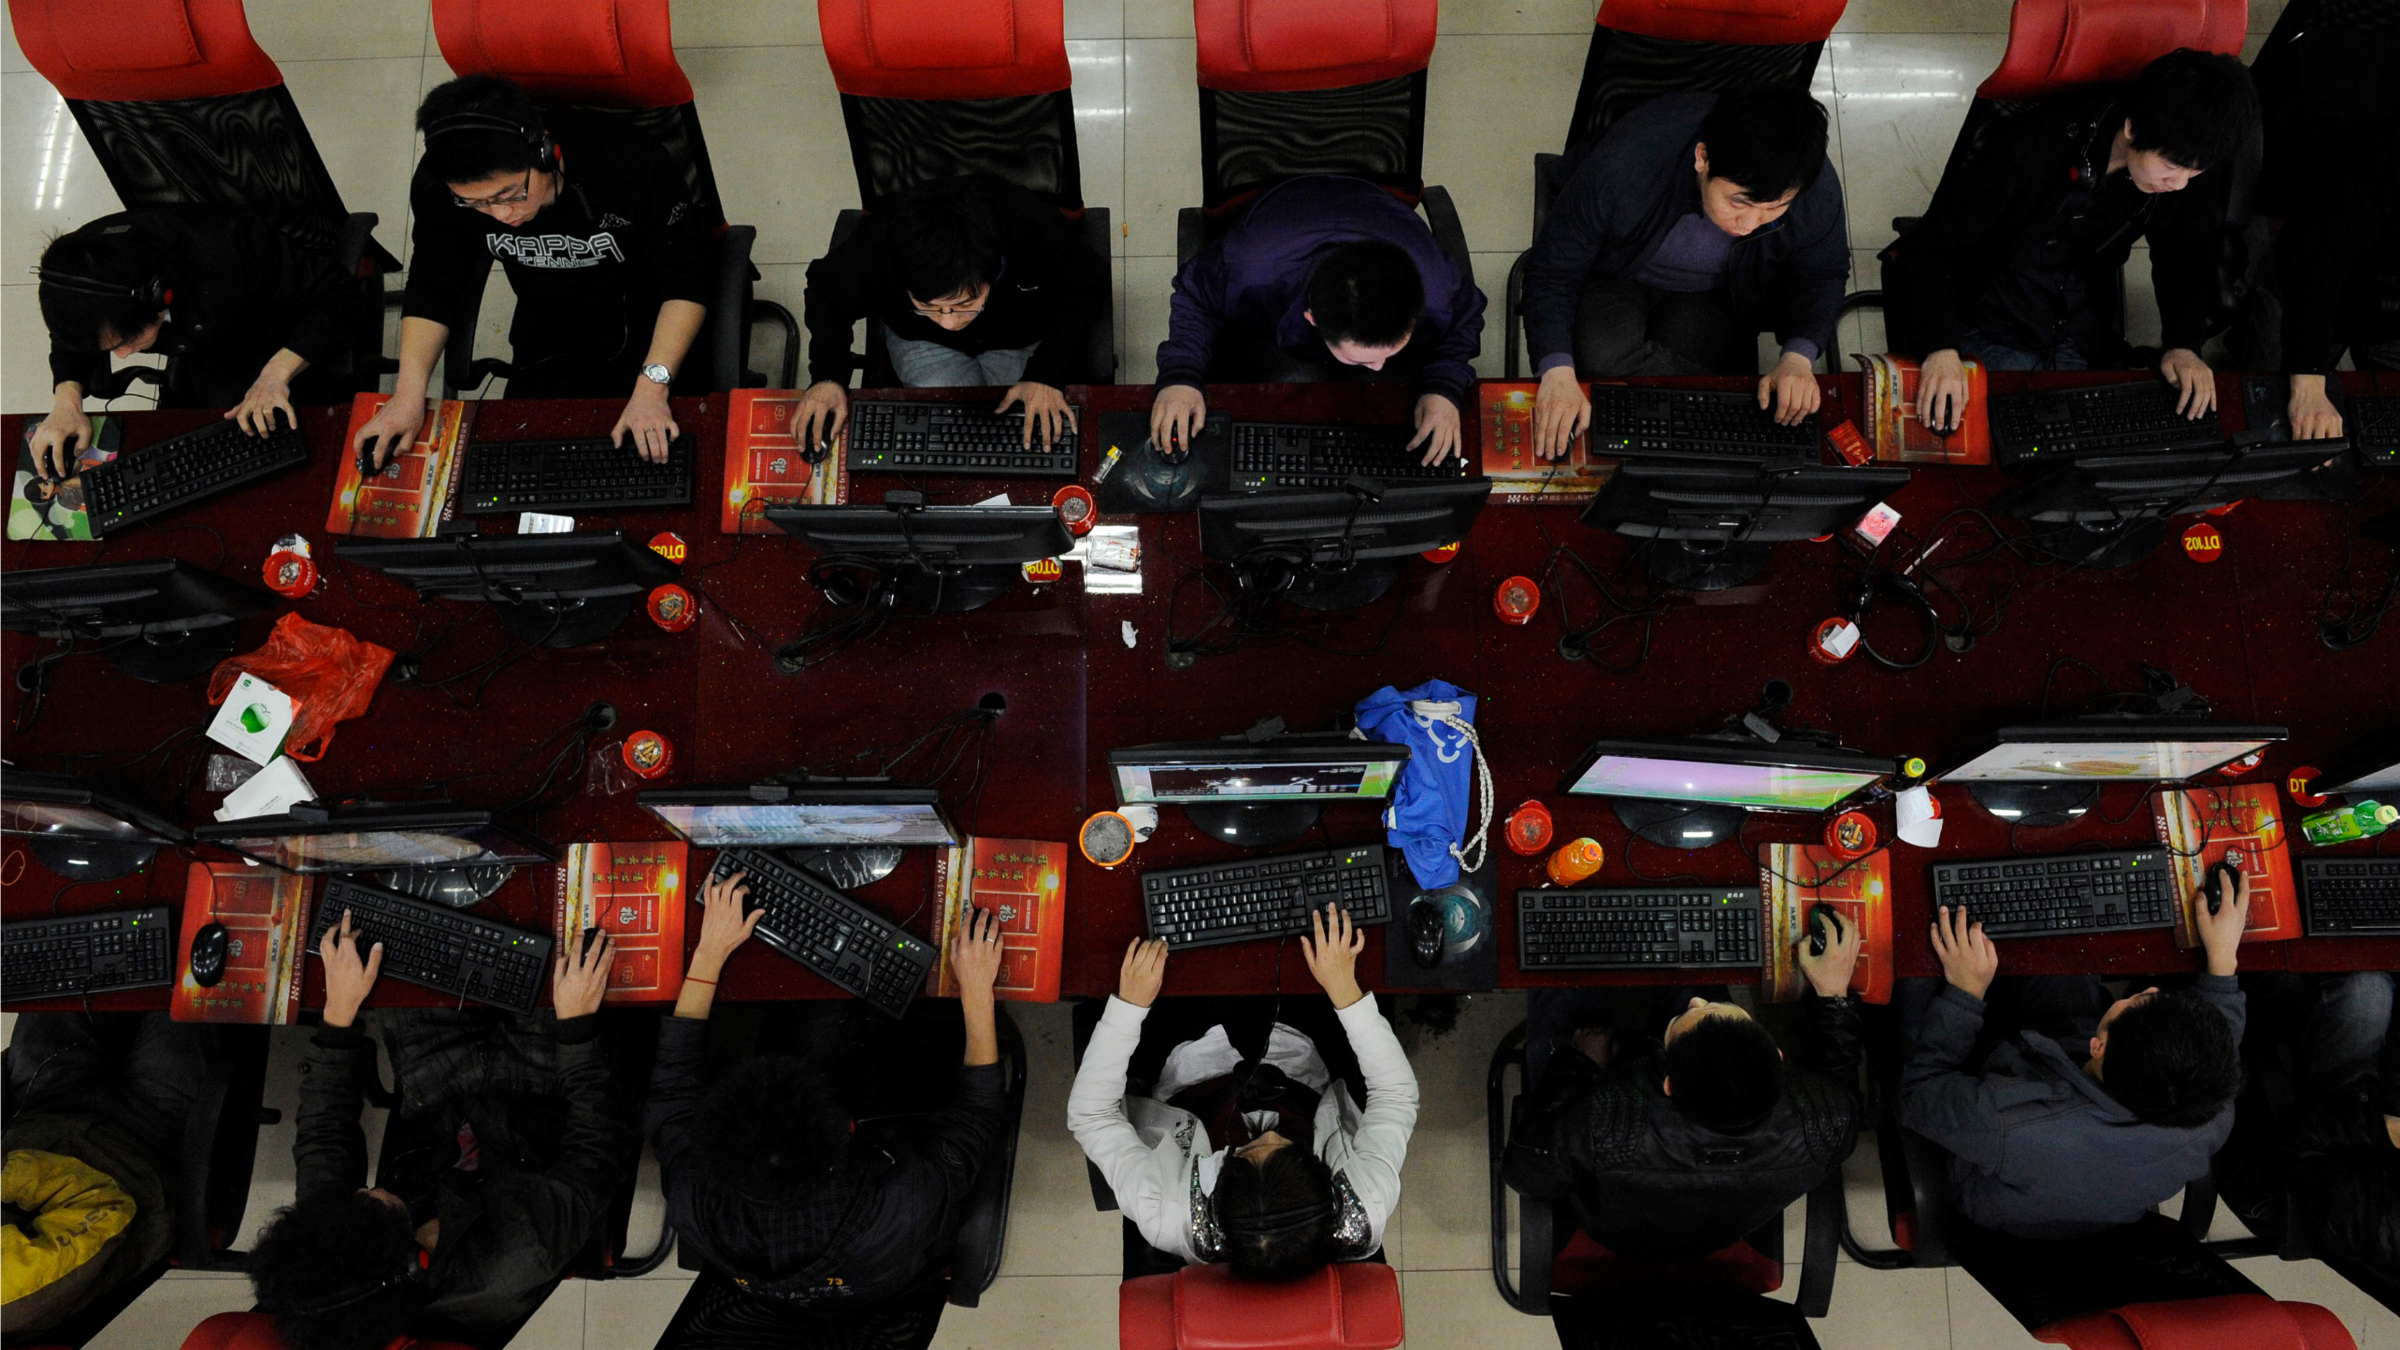 People use the computer at an Internet cafe in Taiyuan, Shanxi province.